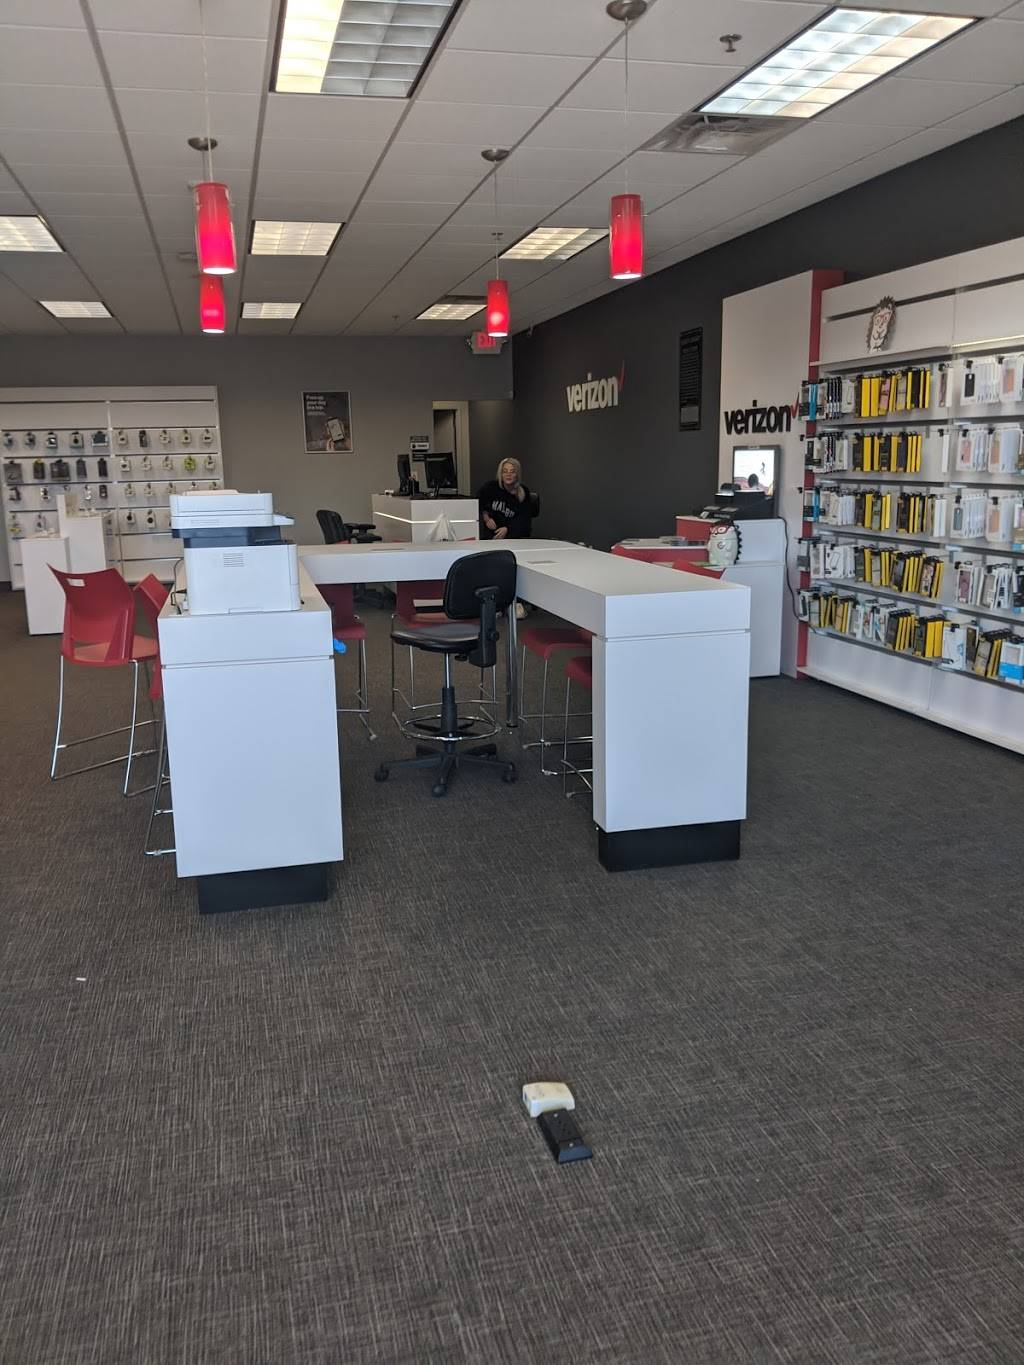 Verizon Authorized Retailer - Russell Cellular - electronics store  | Photo 6 of 9 | Address: 5227 N Antioch Rd, Kansas City, MO 64119, USA | Phone: (816) 359-3330